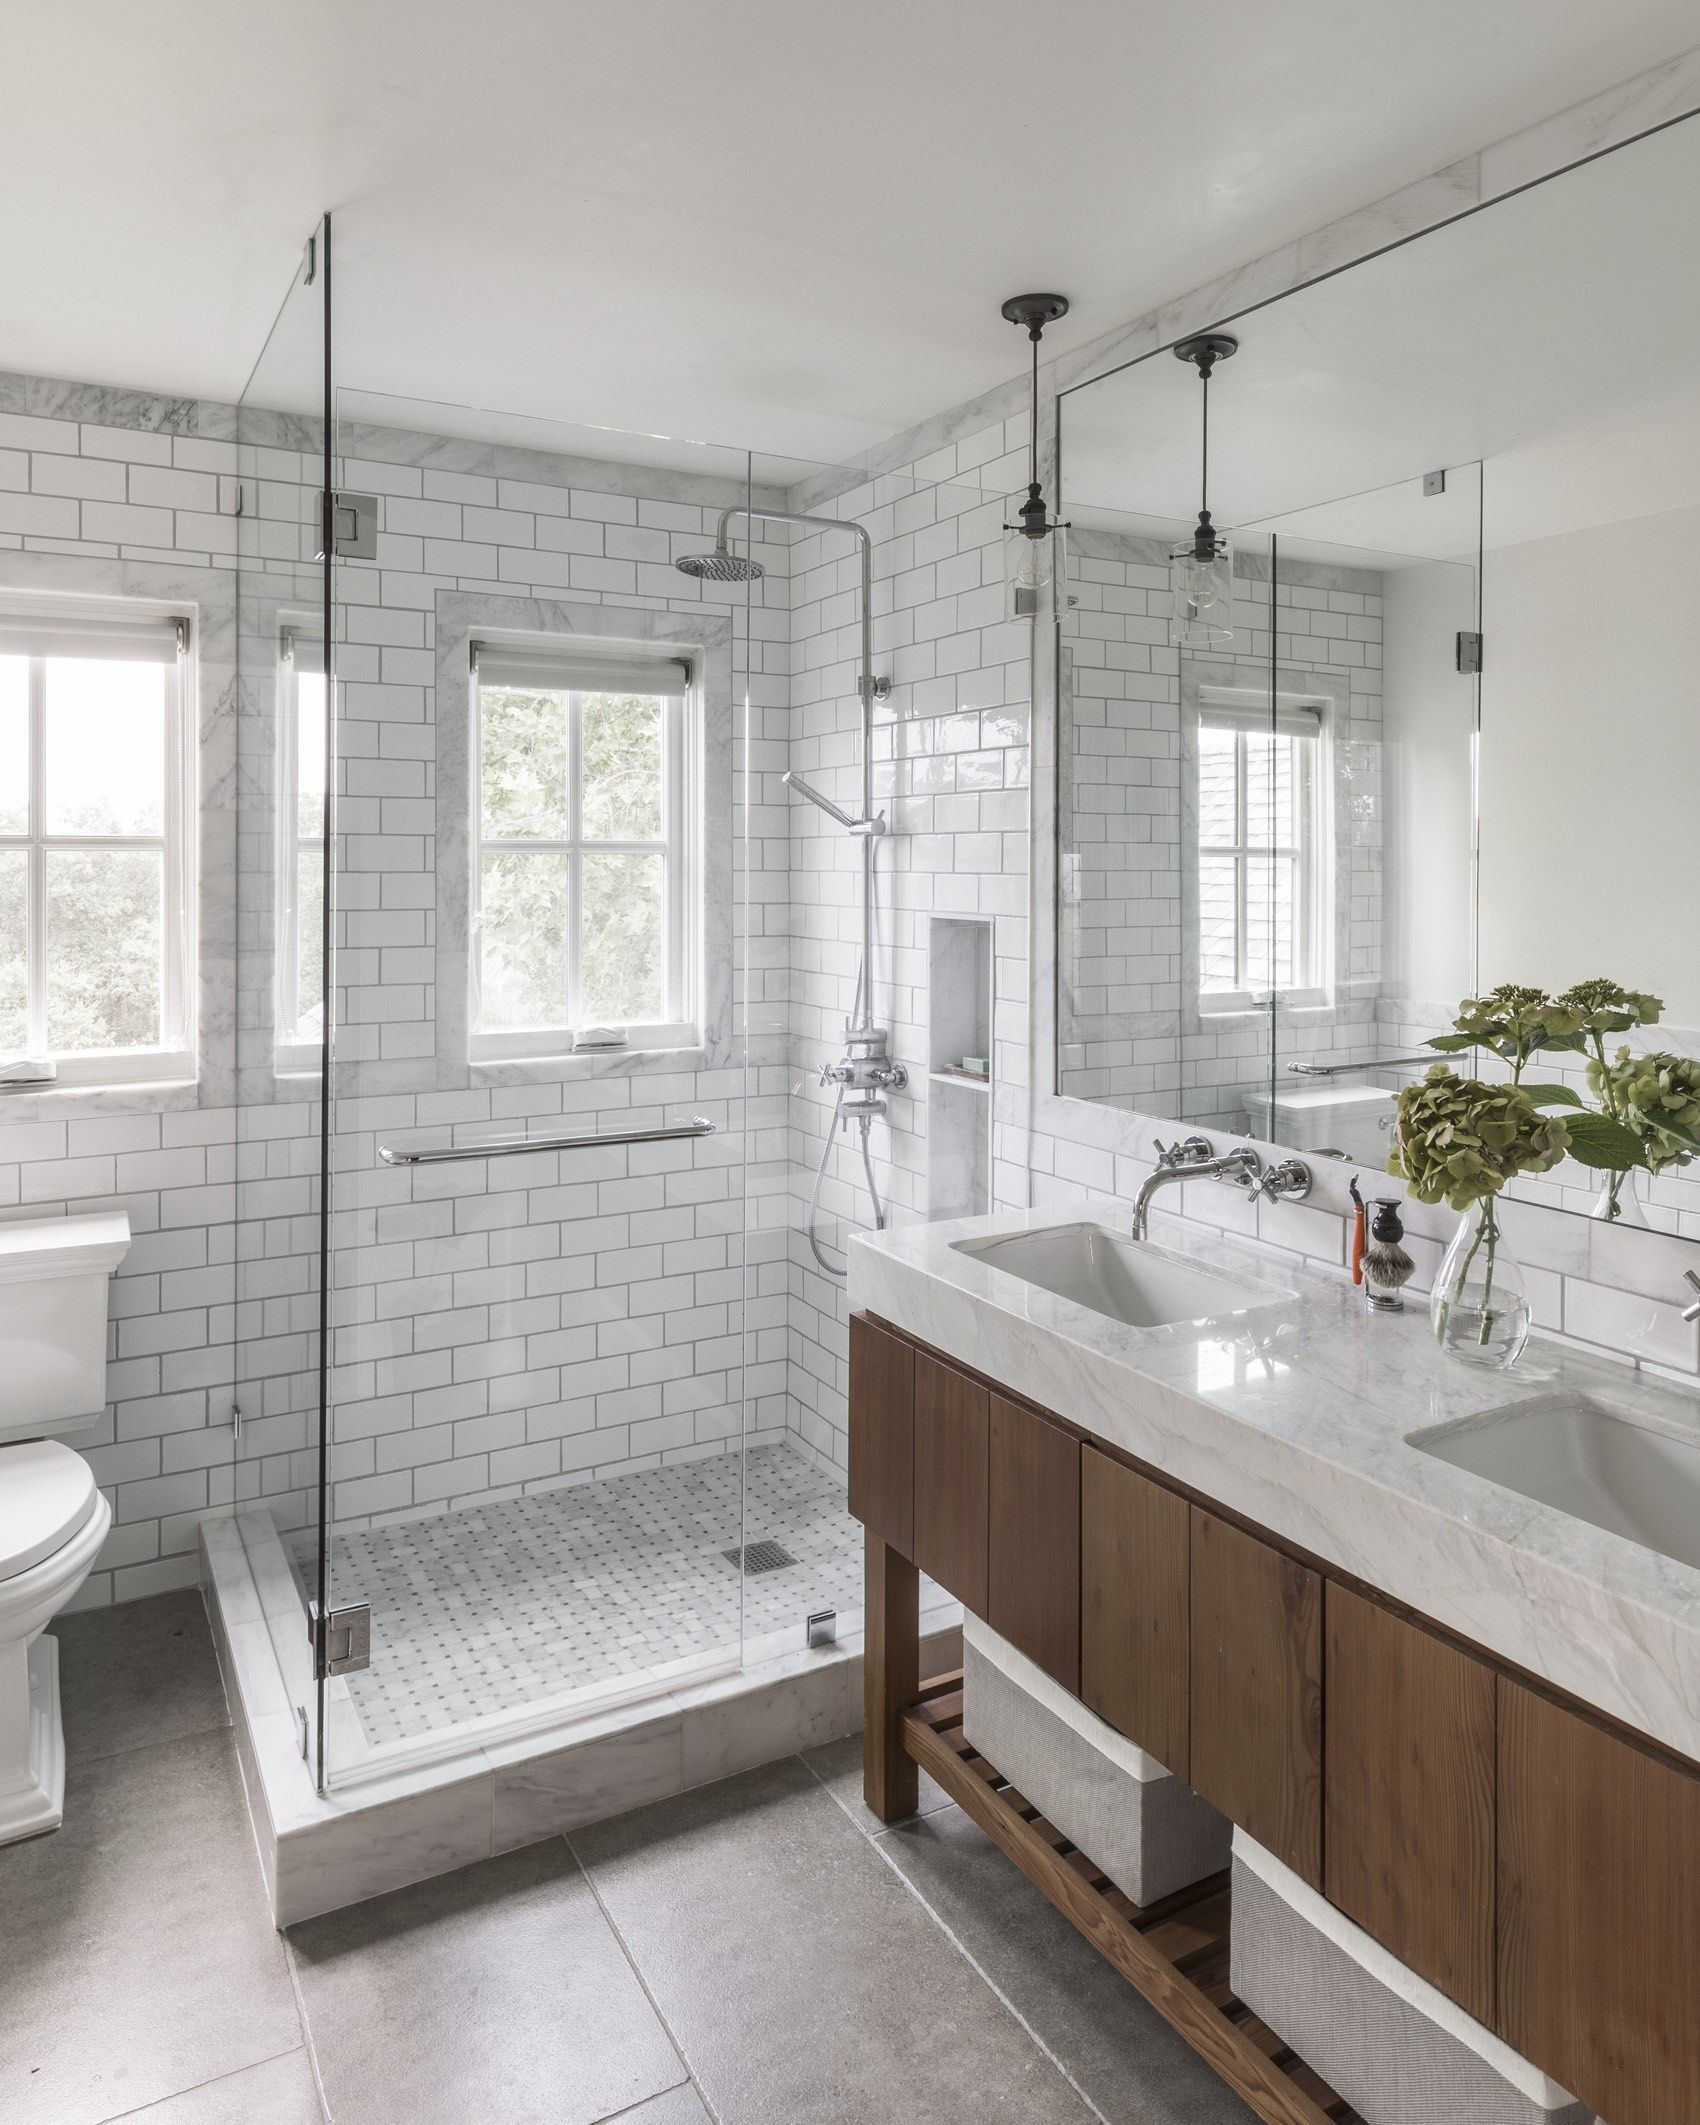 Walk In Shower with Seat Designs New 25 Walk In Shower Ideas Bathrooms with Walk In Showers